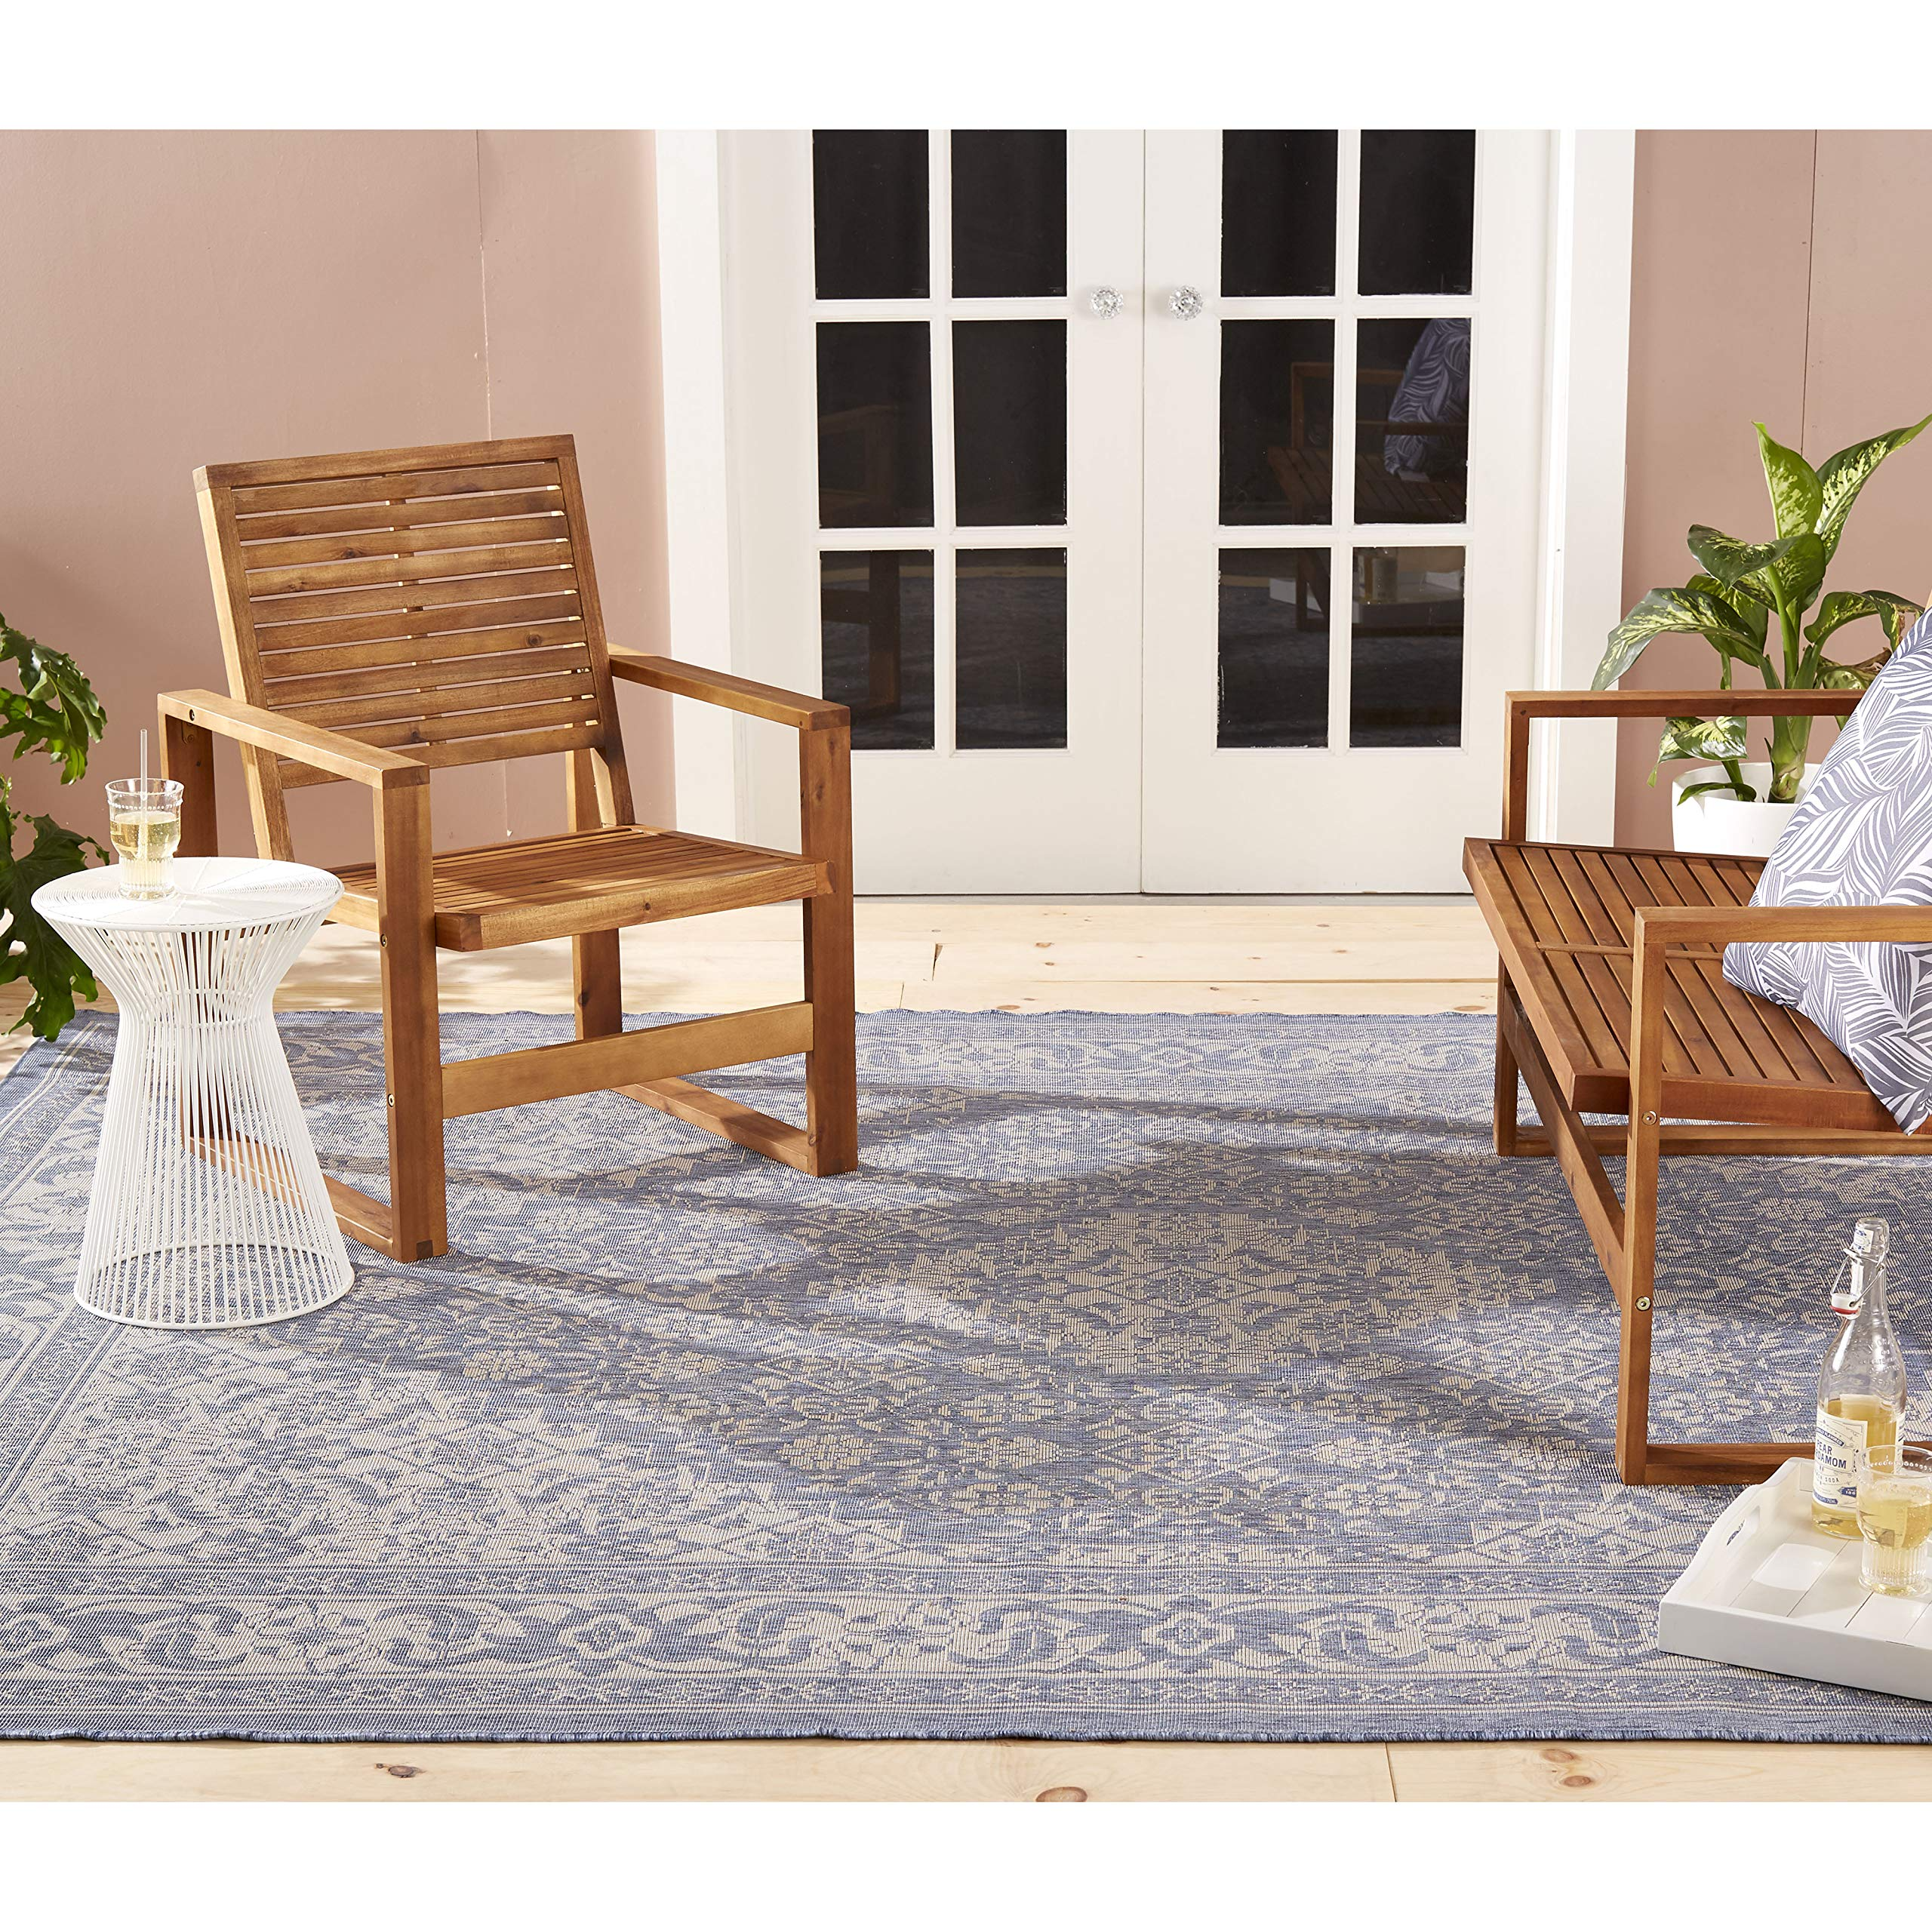 Home Dynamix Nicole Miller Patio Country Dahlia Indoor/Outdoor Area Rug 5'2''x7'2'', Traditional Medallion Blue/Gray